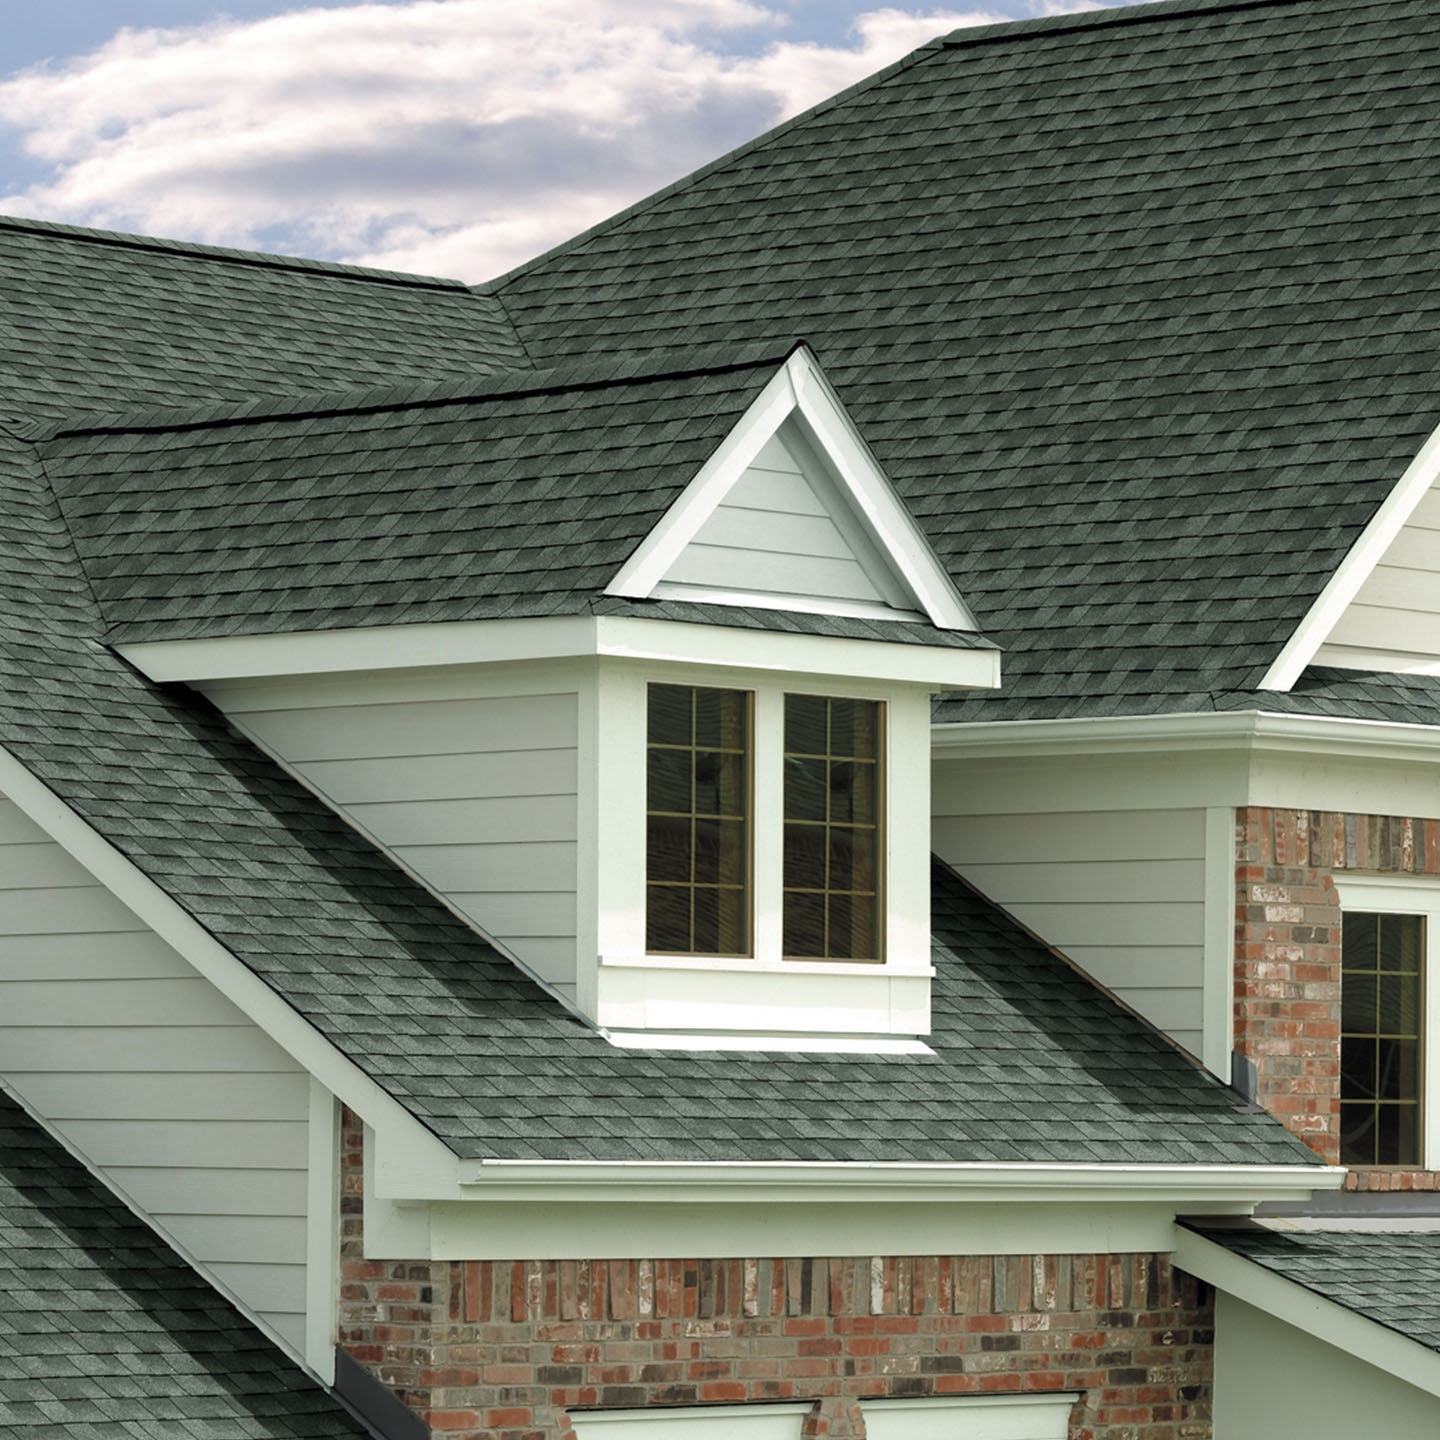 GAF's Timberline Natural Shadow Slate roof